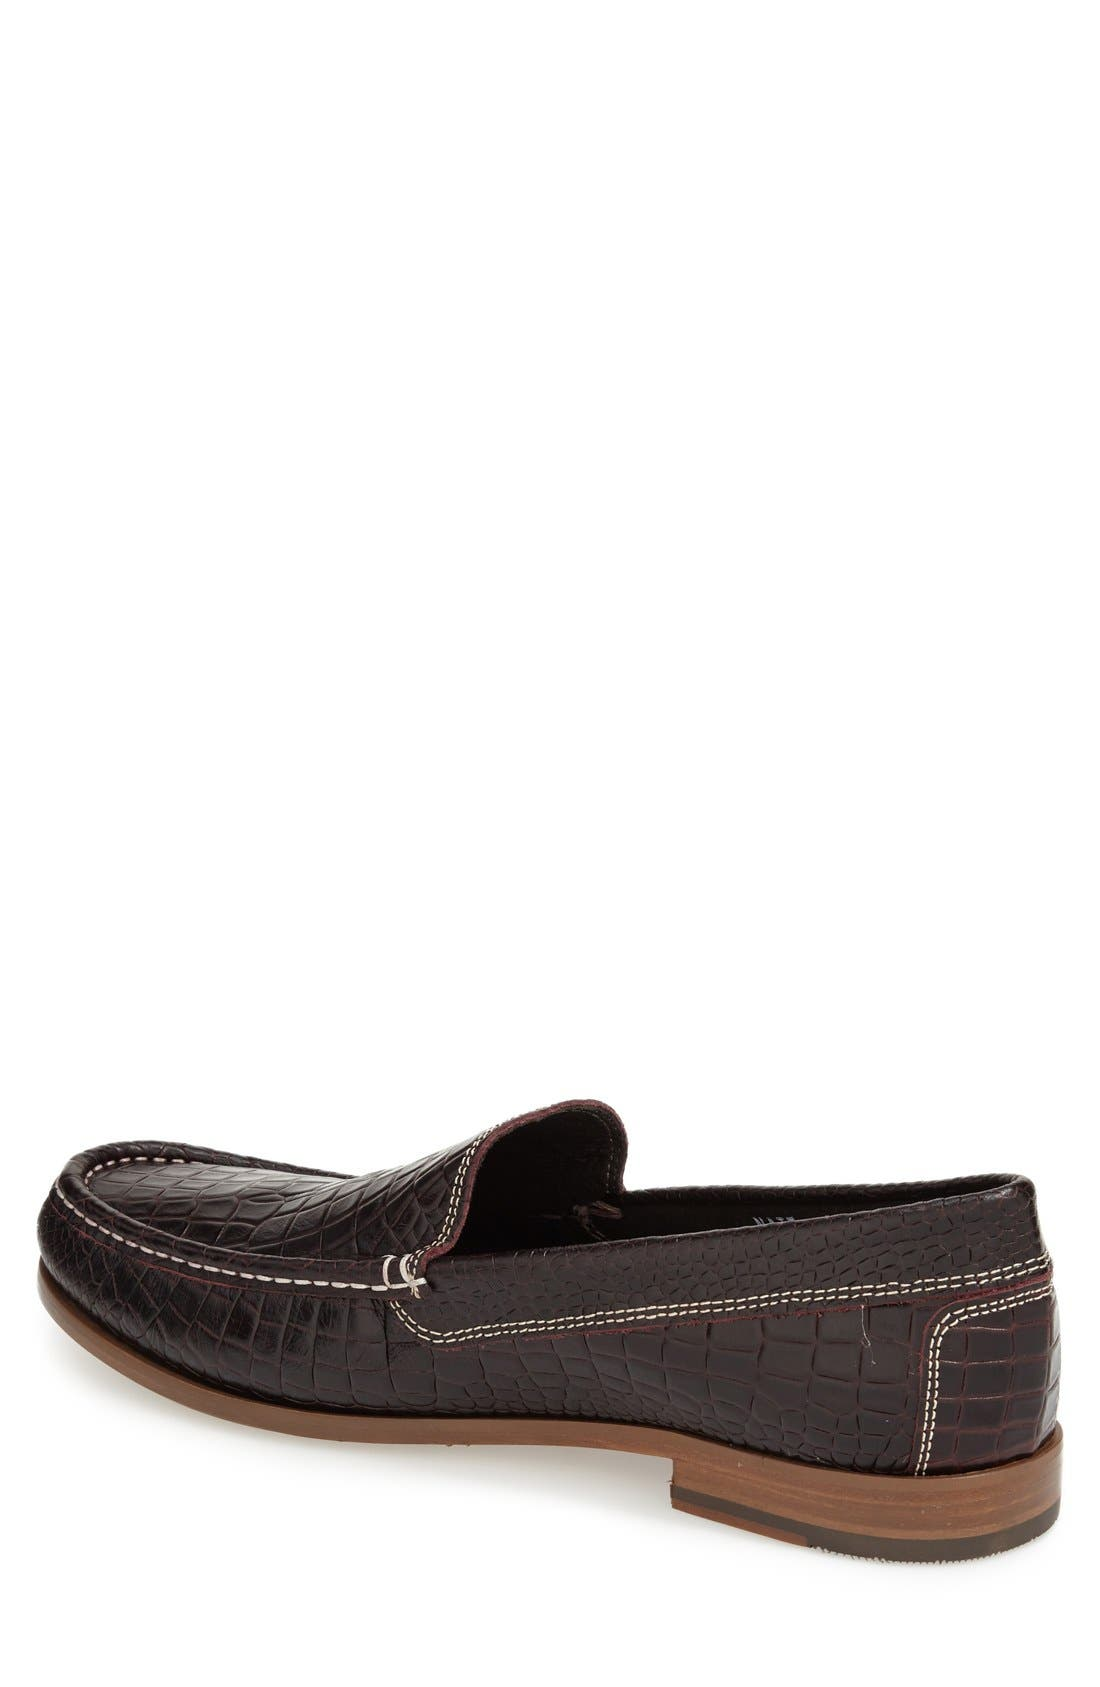 Donald J Pliner 'Nate' Loafer,                             Alternate thumbnail 10, color,